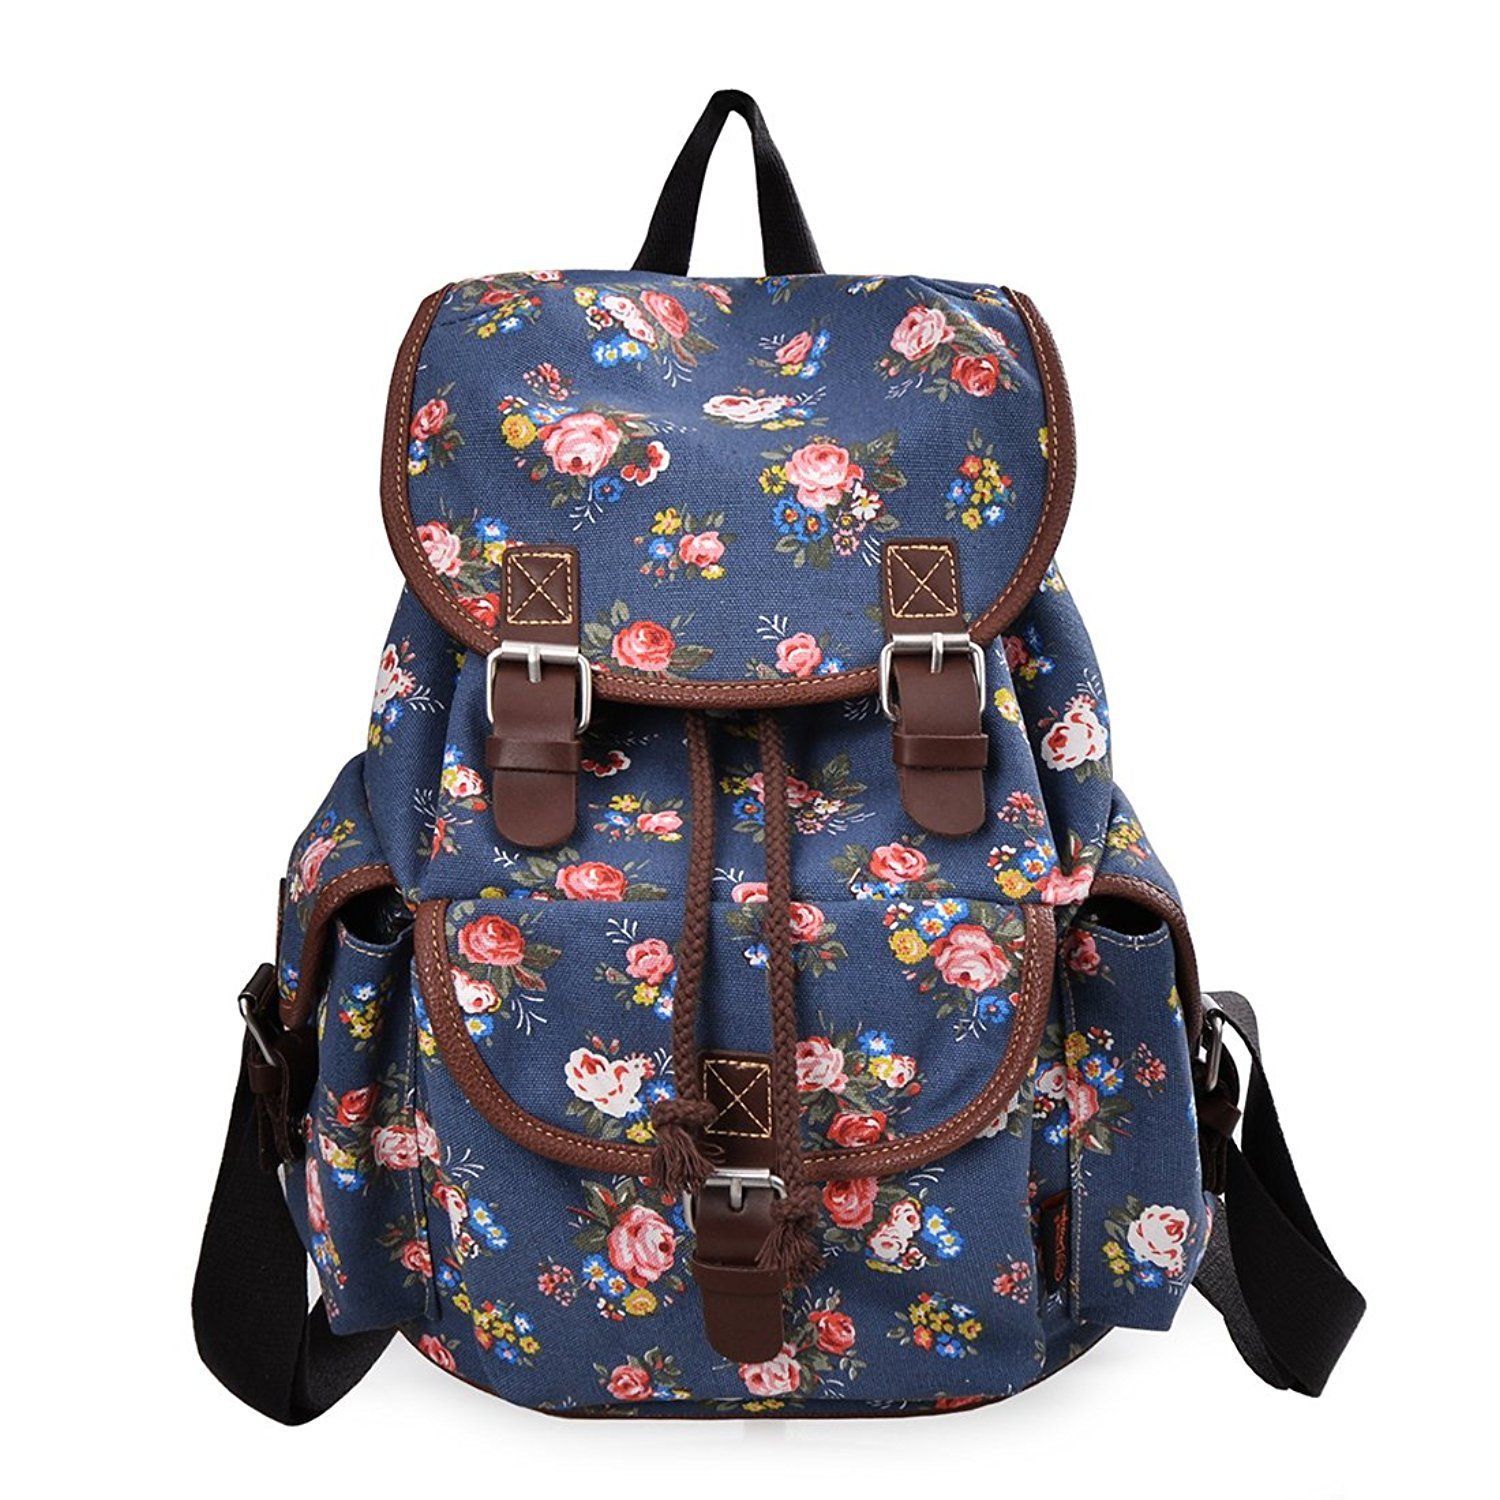 ae4f3187e2be Epokris Teen Girls School Bookbag Rucksack Casual Daypack Floral Backpack  163 -- For more information